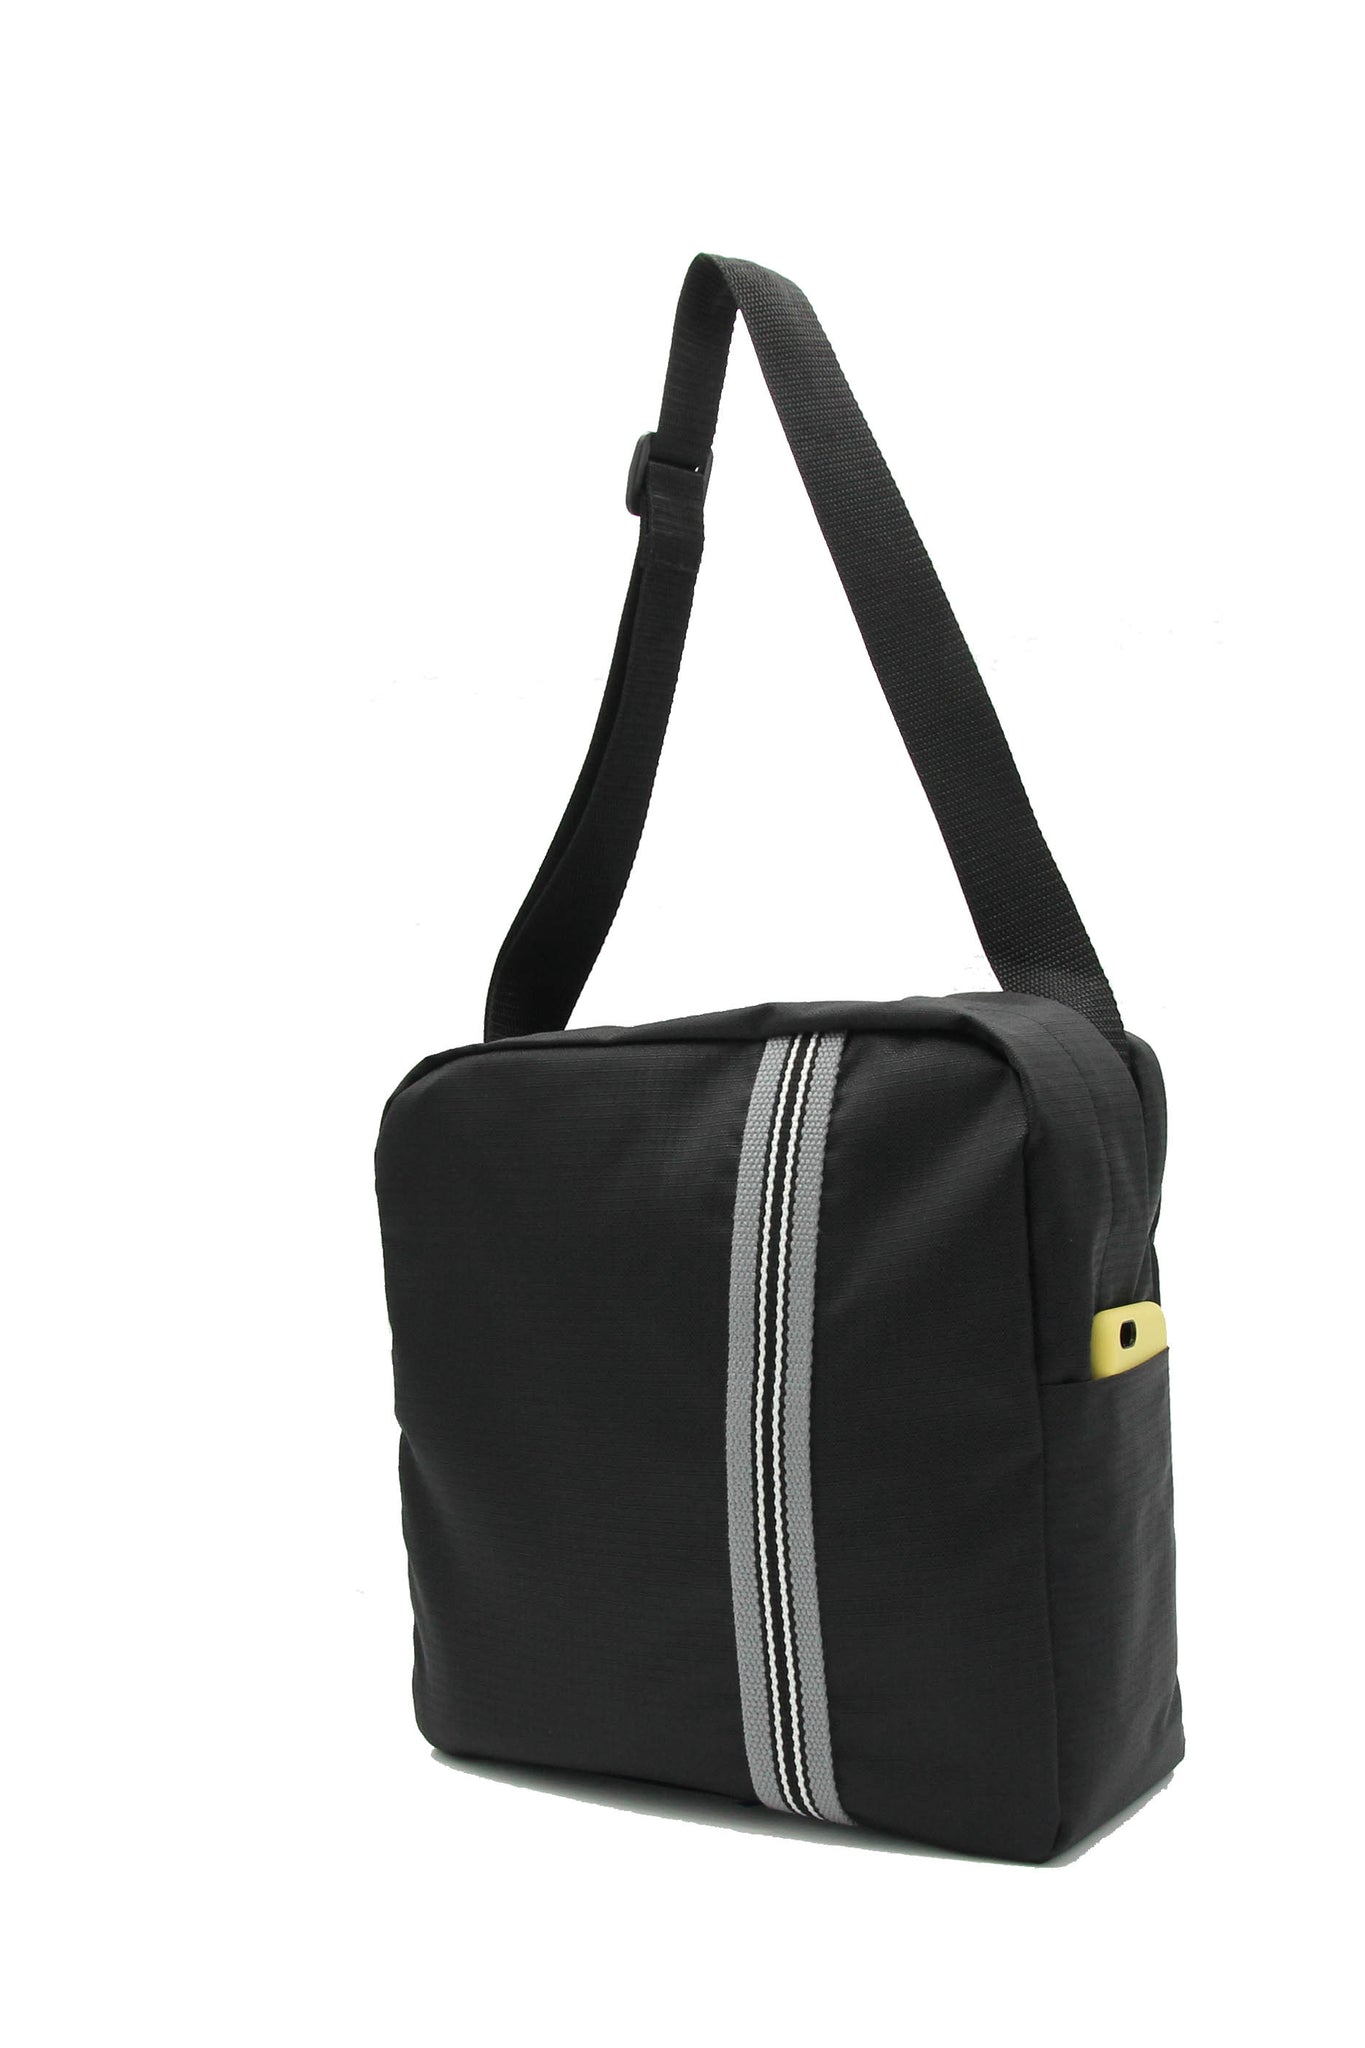 Clear messenger bag with black striped nylon sleeve